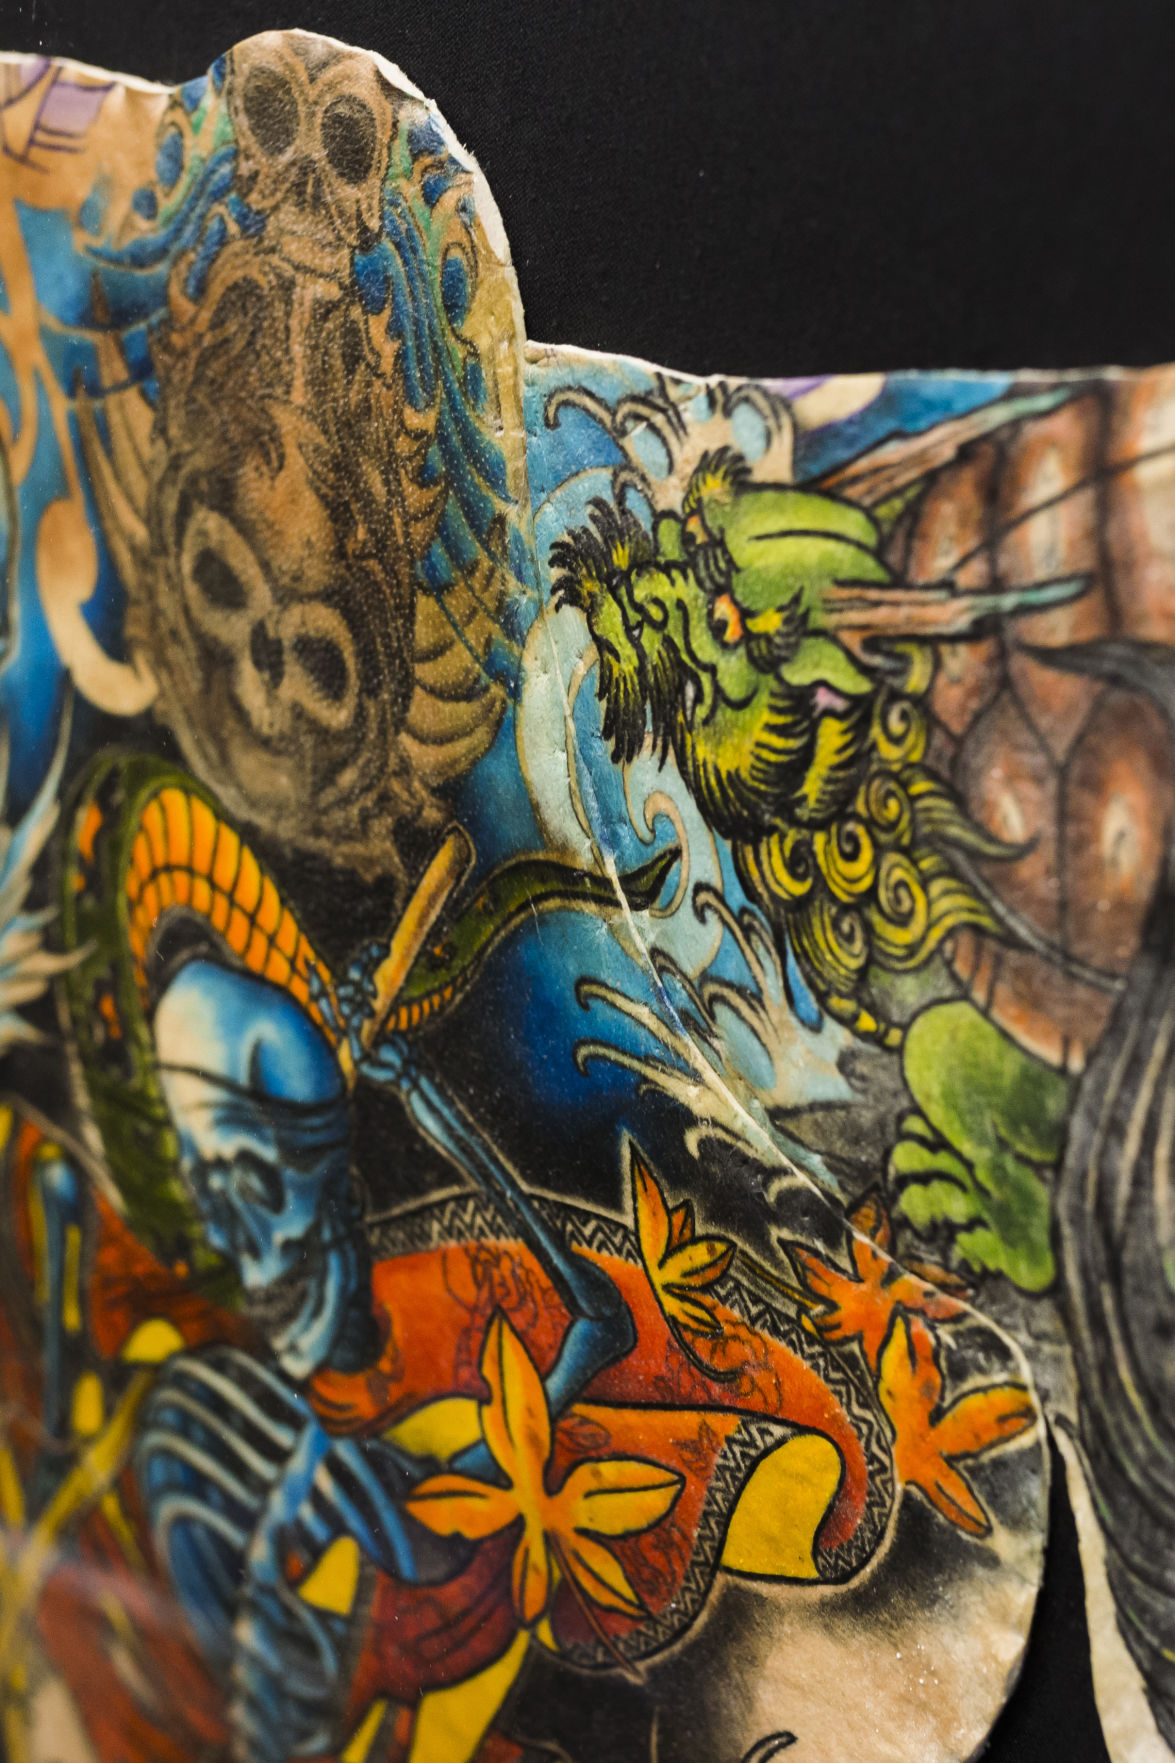 Man finds way to memorialize tattoos